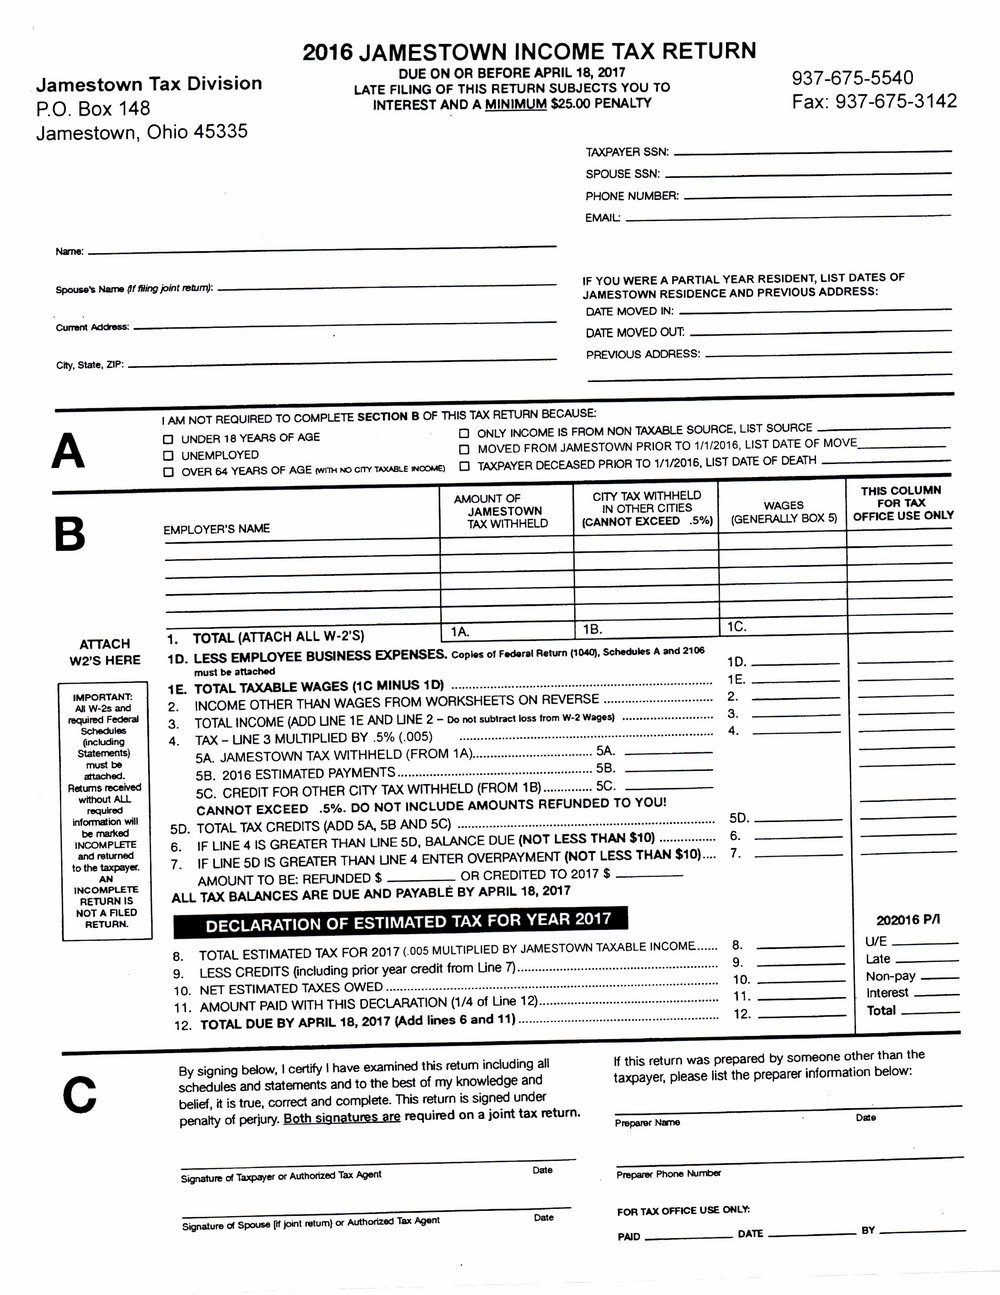 Irs Forms 1040ez 2015